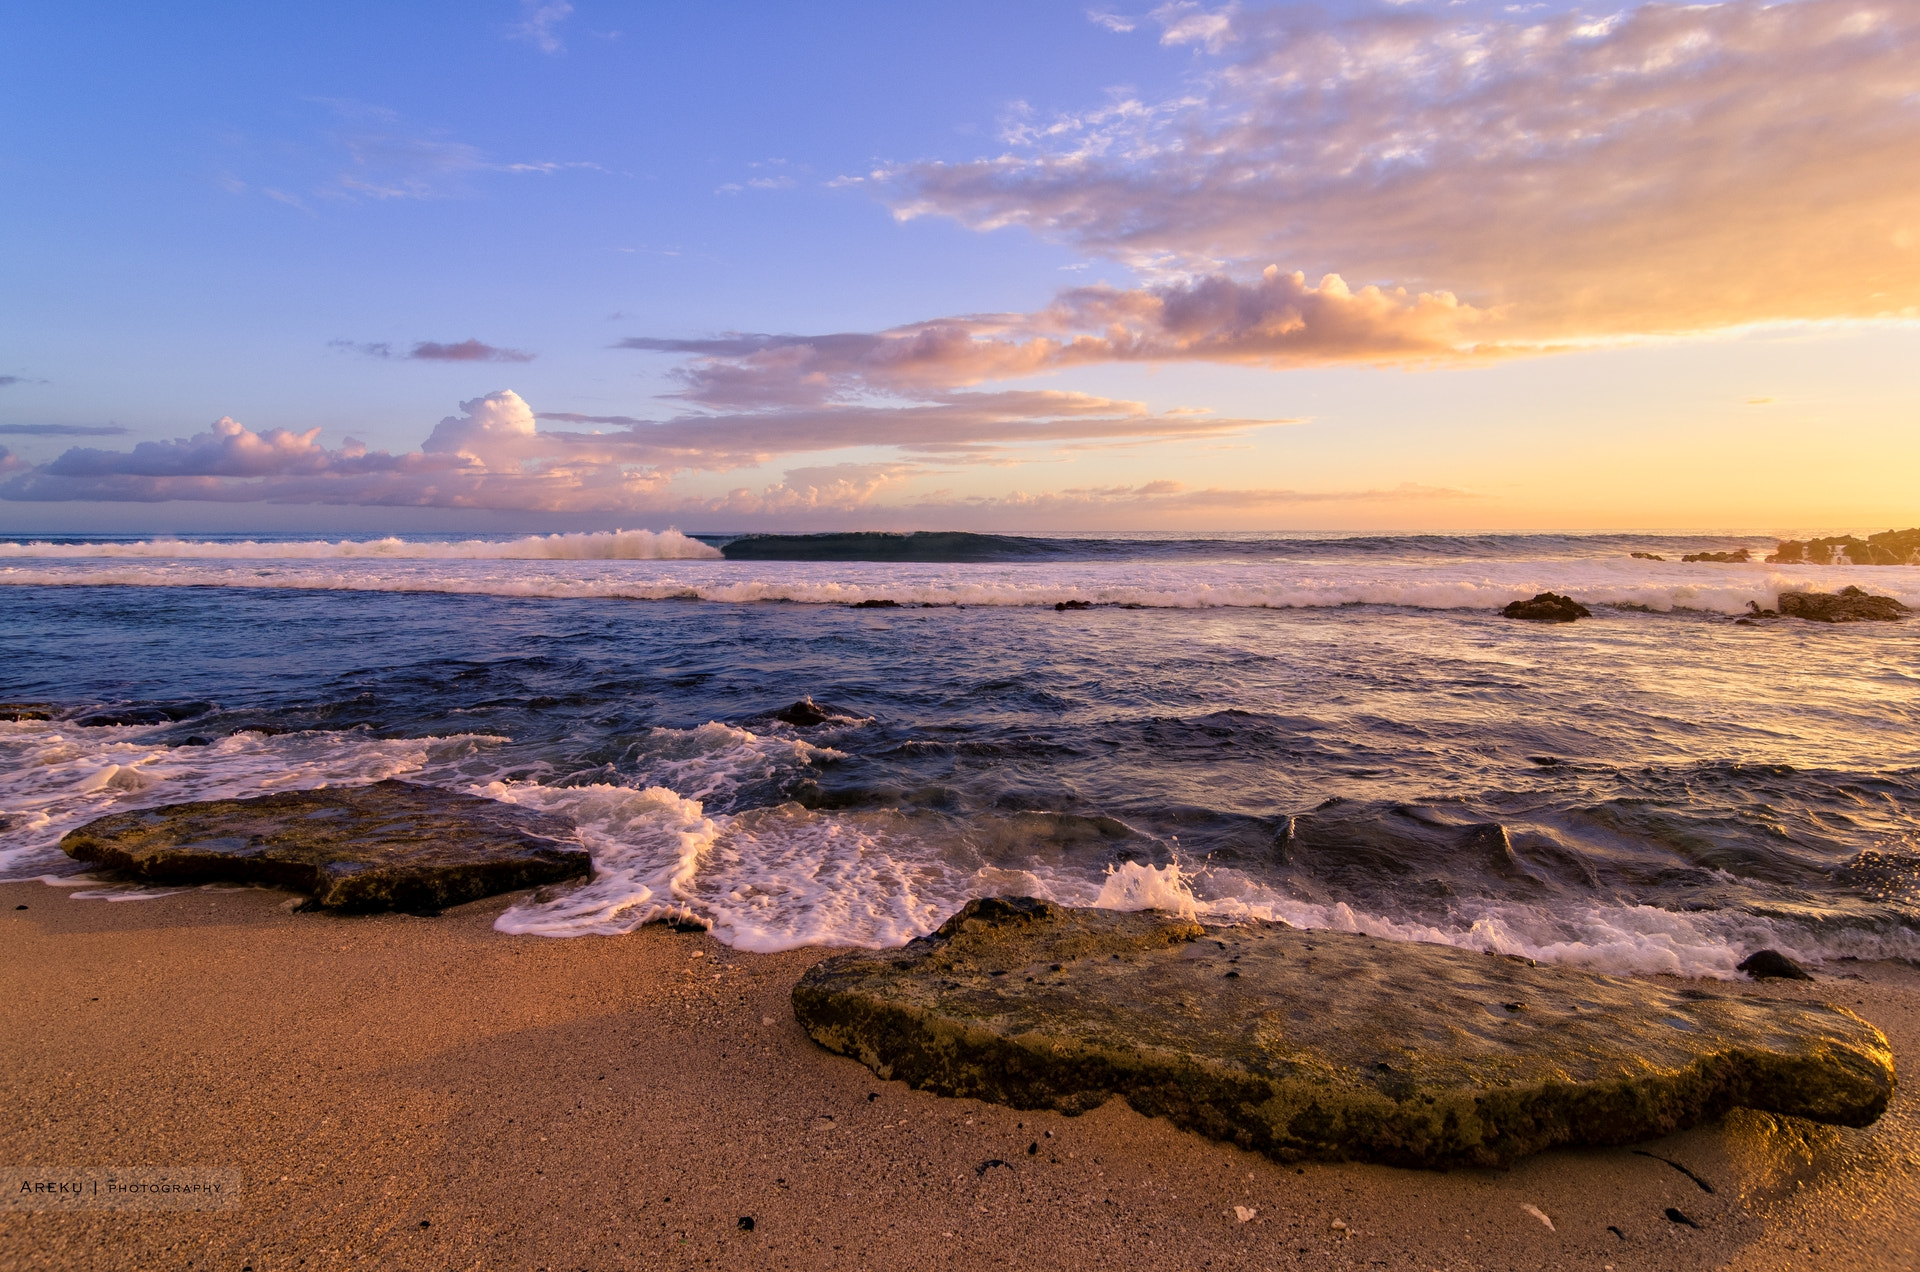 Photograph Sunset #11 by Alexandre Terrasson on 500px